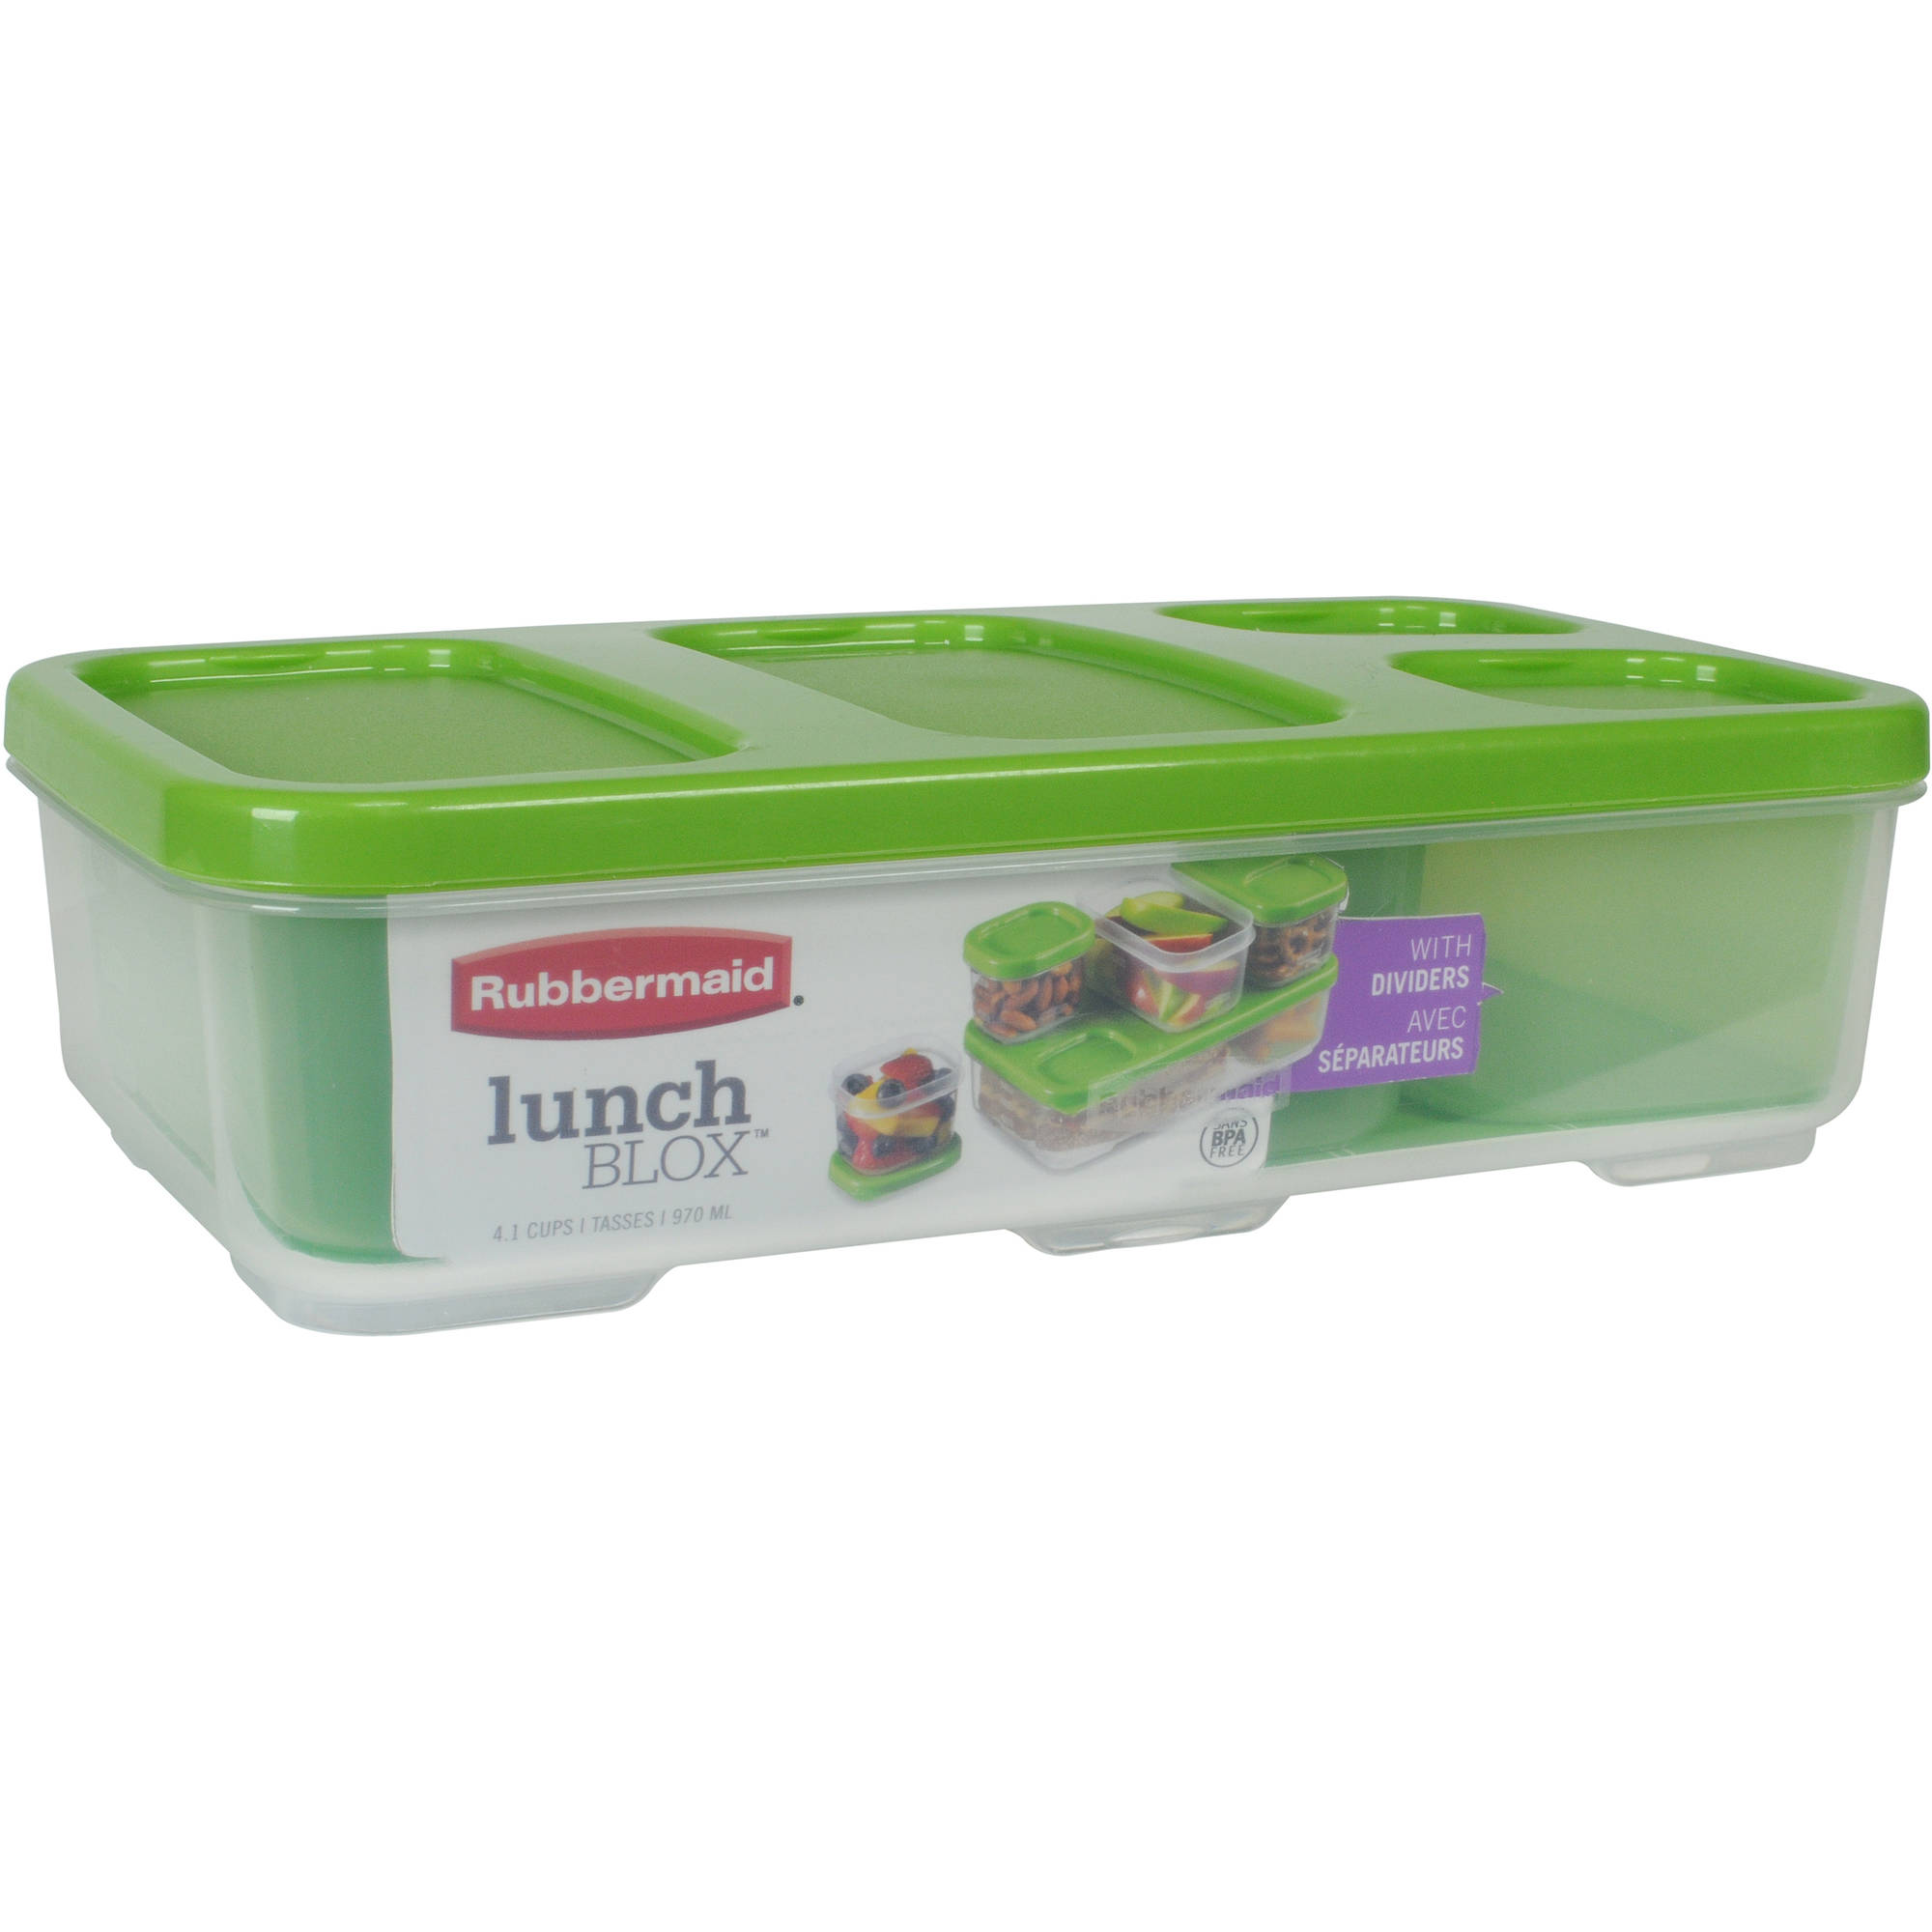 Rubbermaid LunchBlox Entree Food Container with Dividers, Case of 6